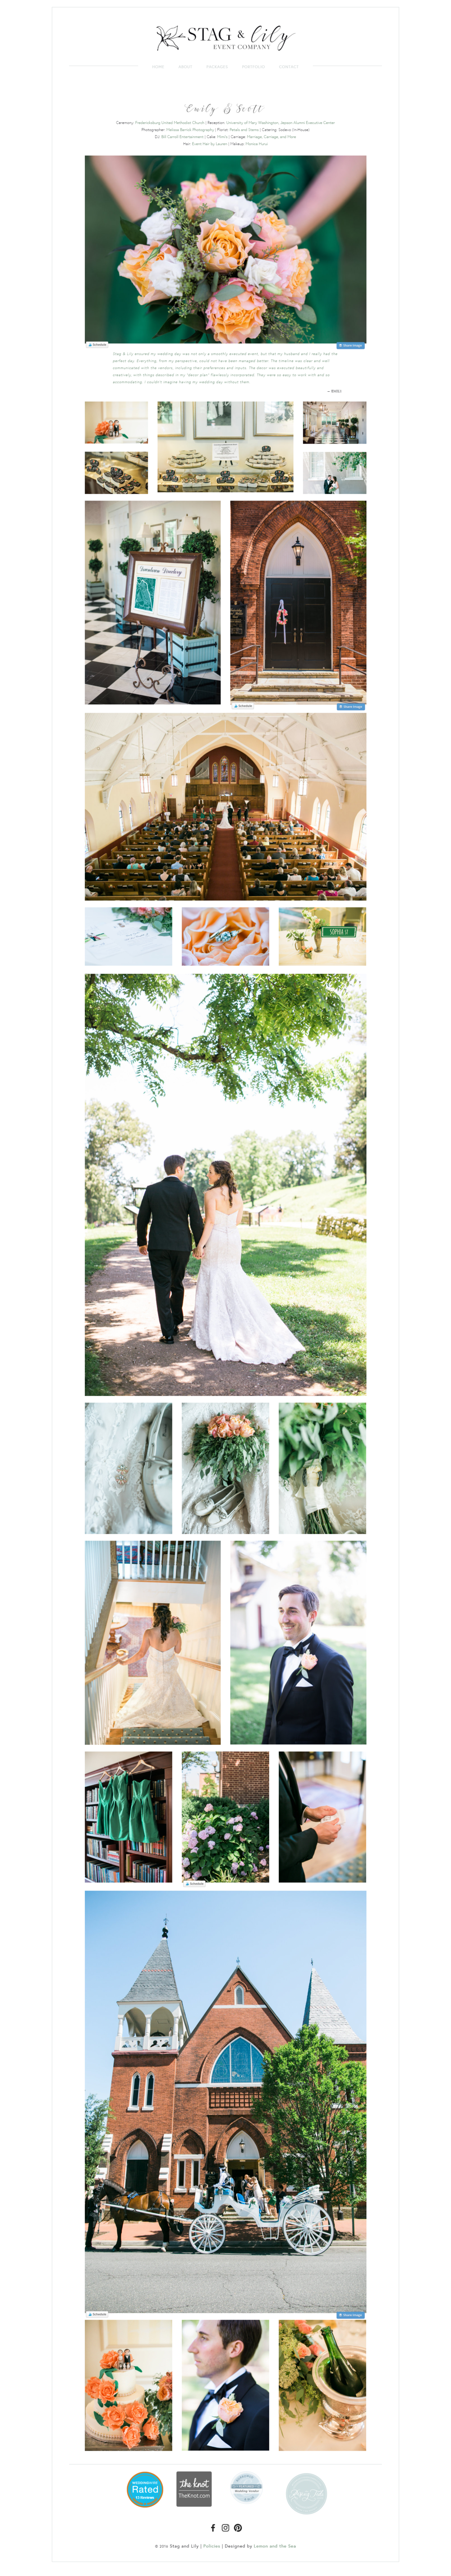 Custom Website Design Gallery Page for Stag & Lily Event Company | Lemon and the Sea: Luxe Boho Chic brand and  custom Squarespace website for event planner in Richmond, VA. Earthy, classic, sophisticated to reach both brides and grooms.